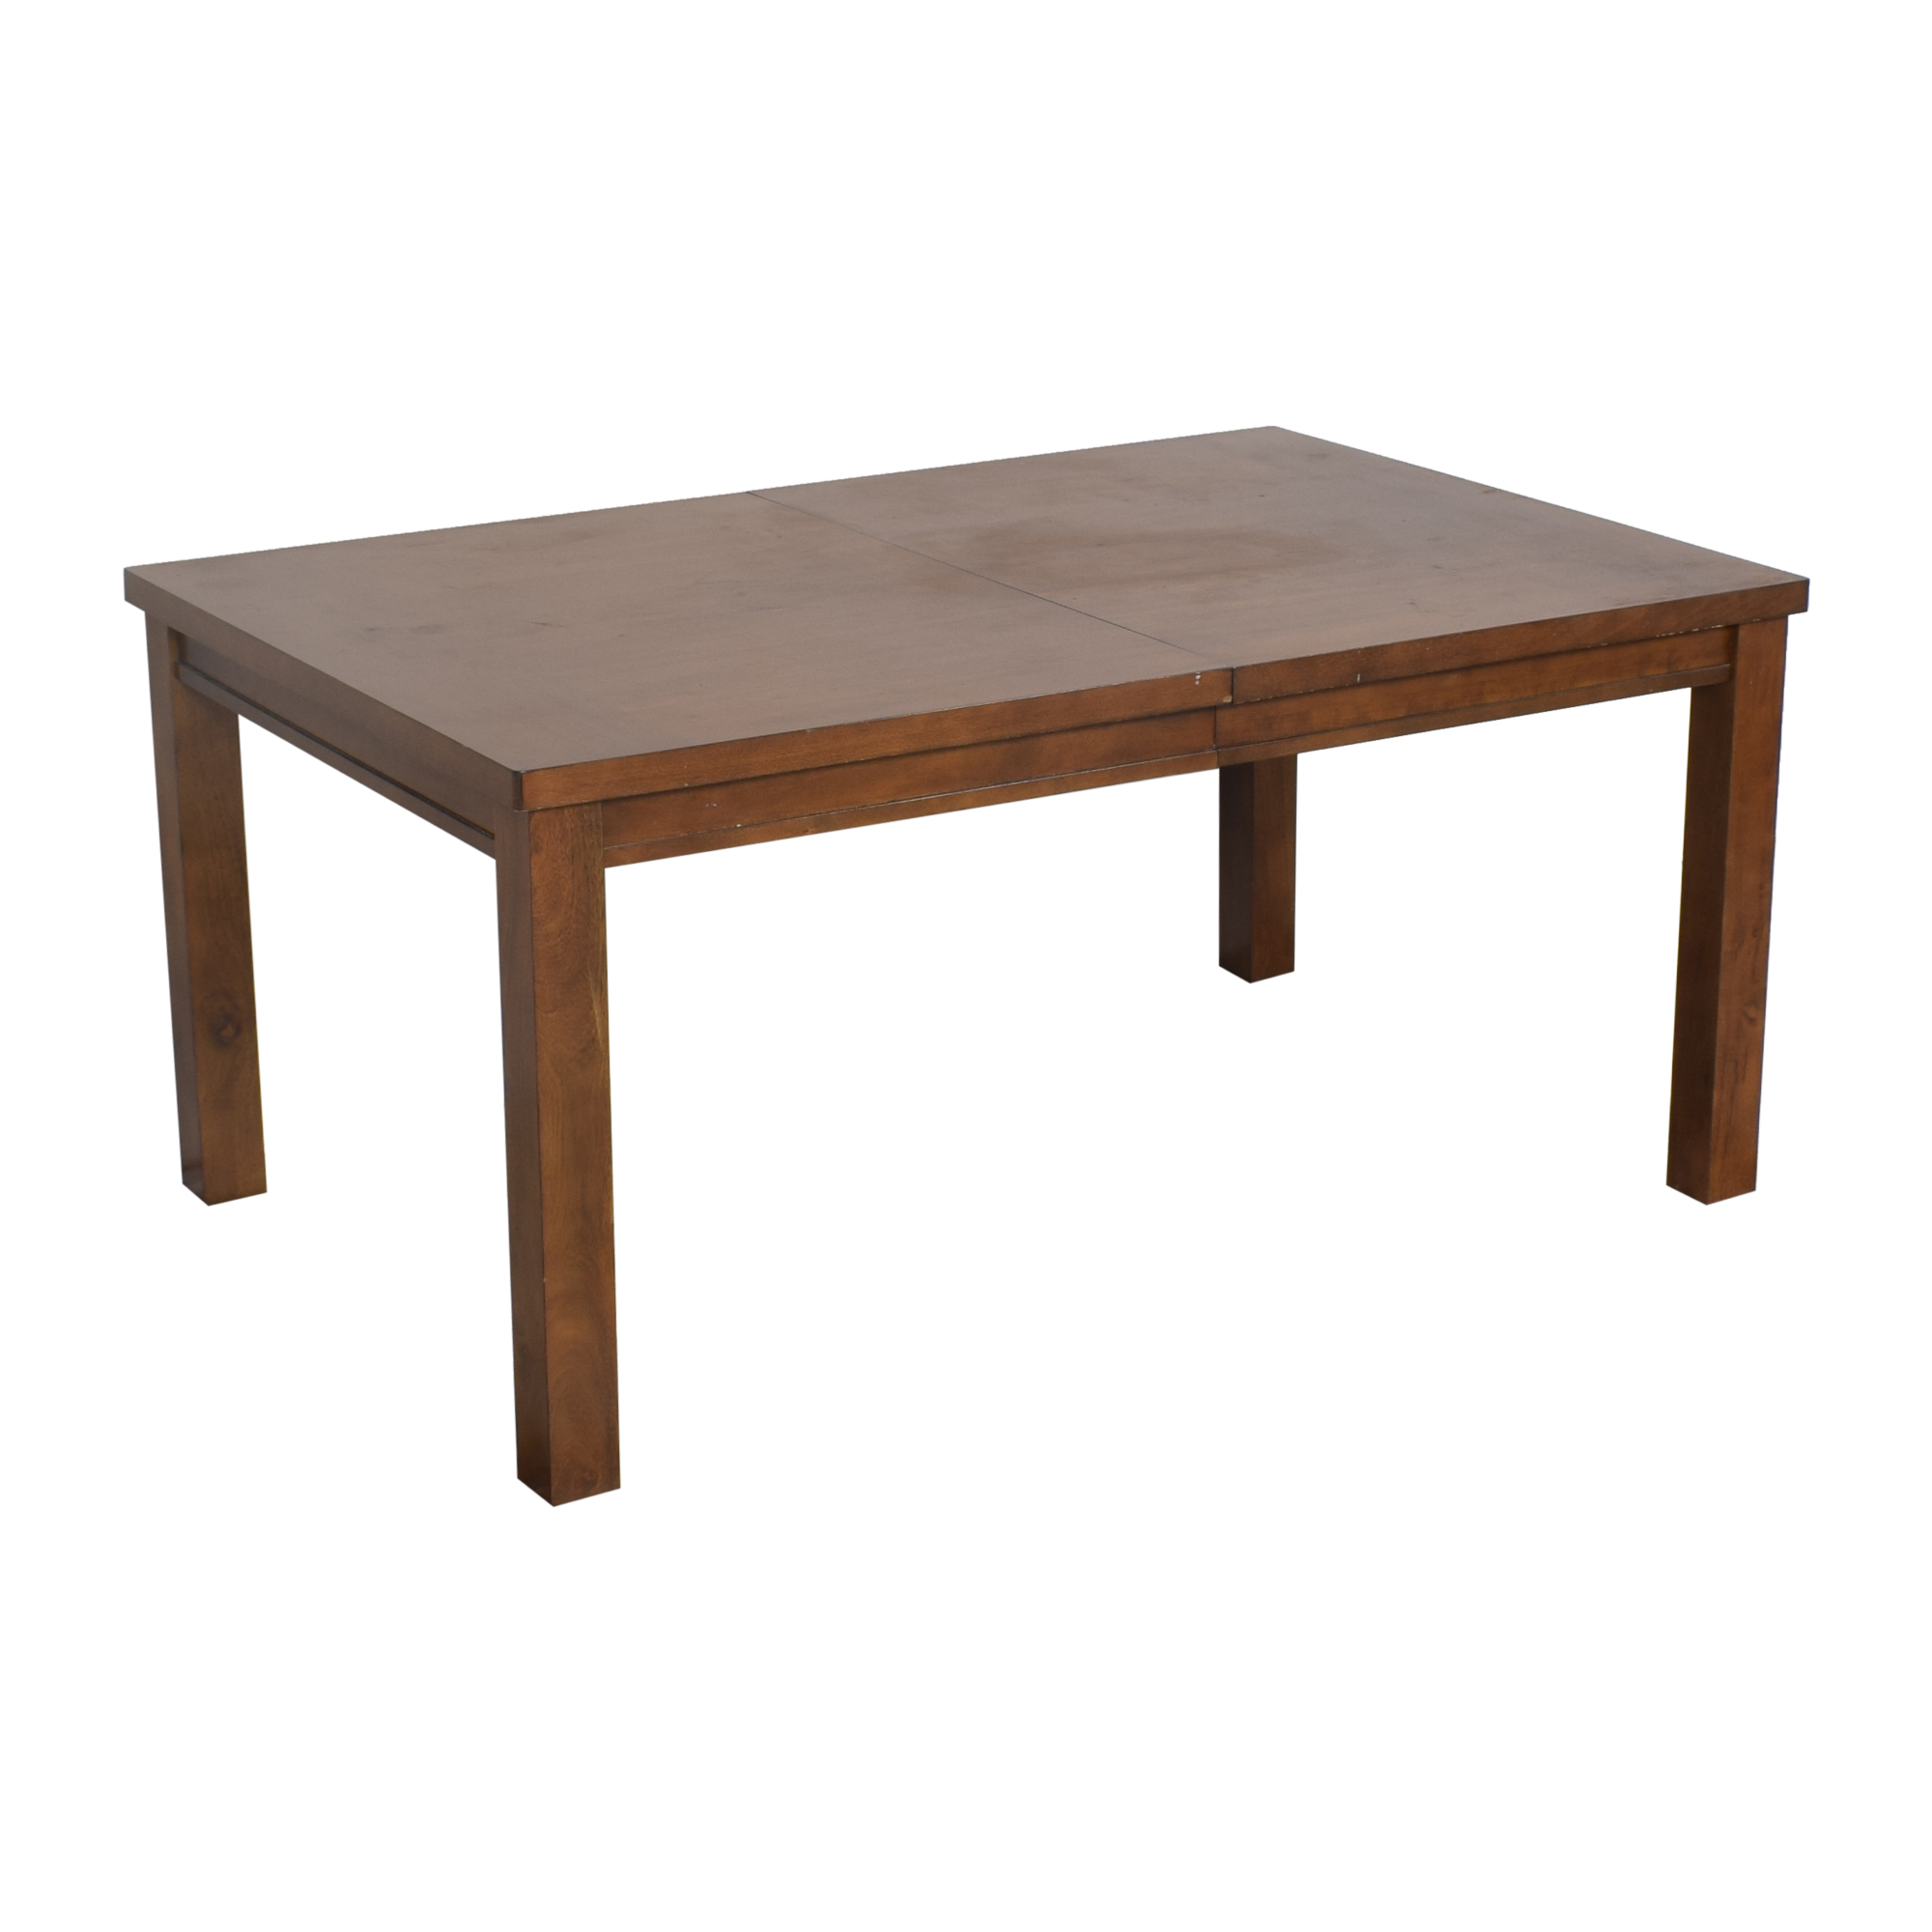 buy Macy's Macy's Extendable Rectangle Dining Table online